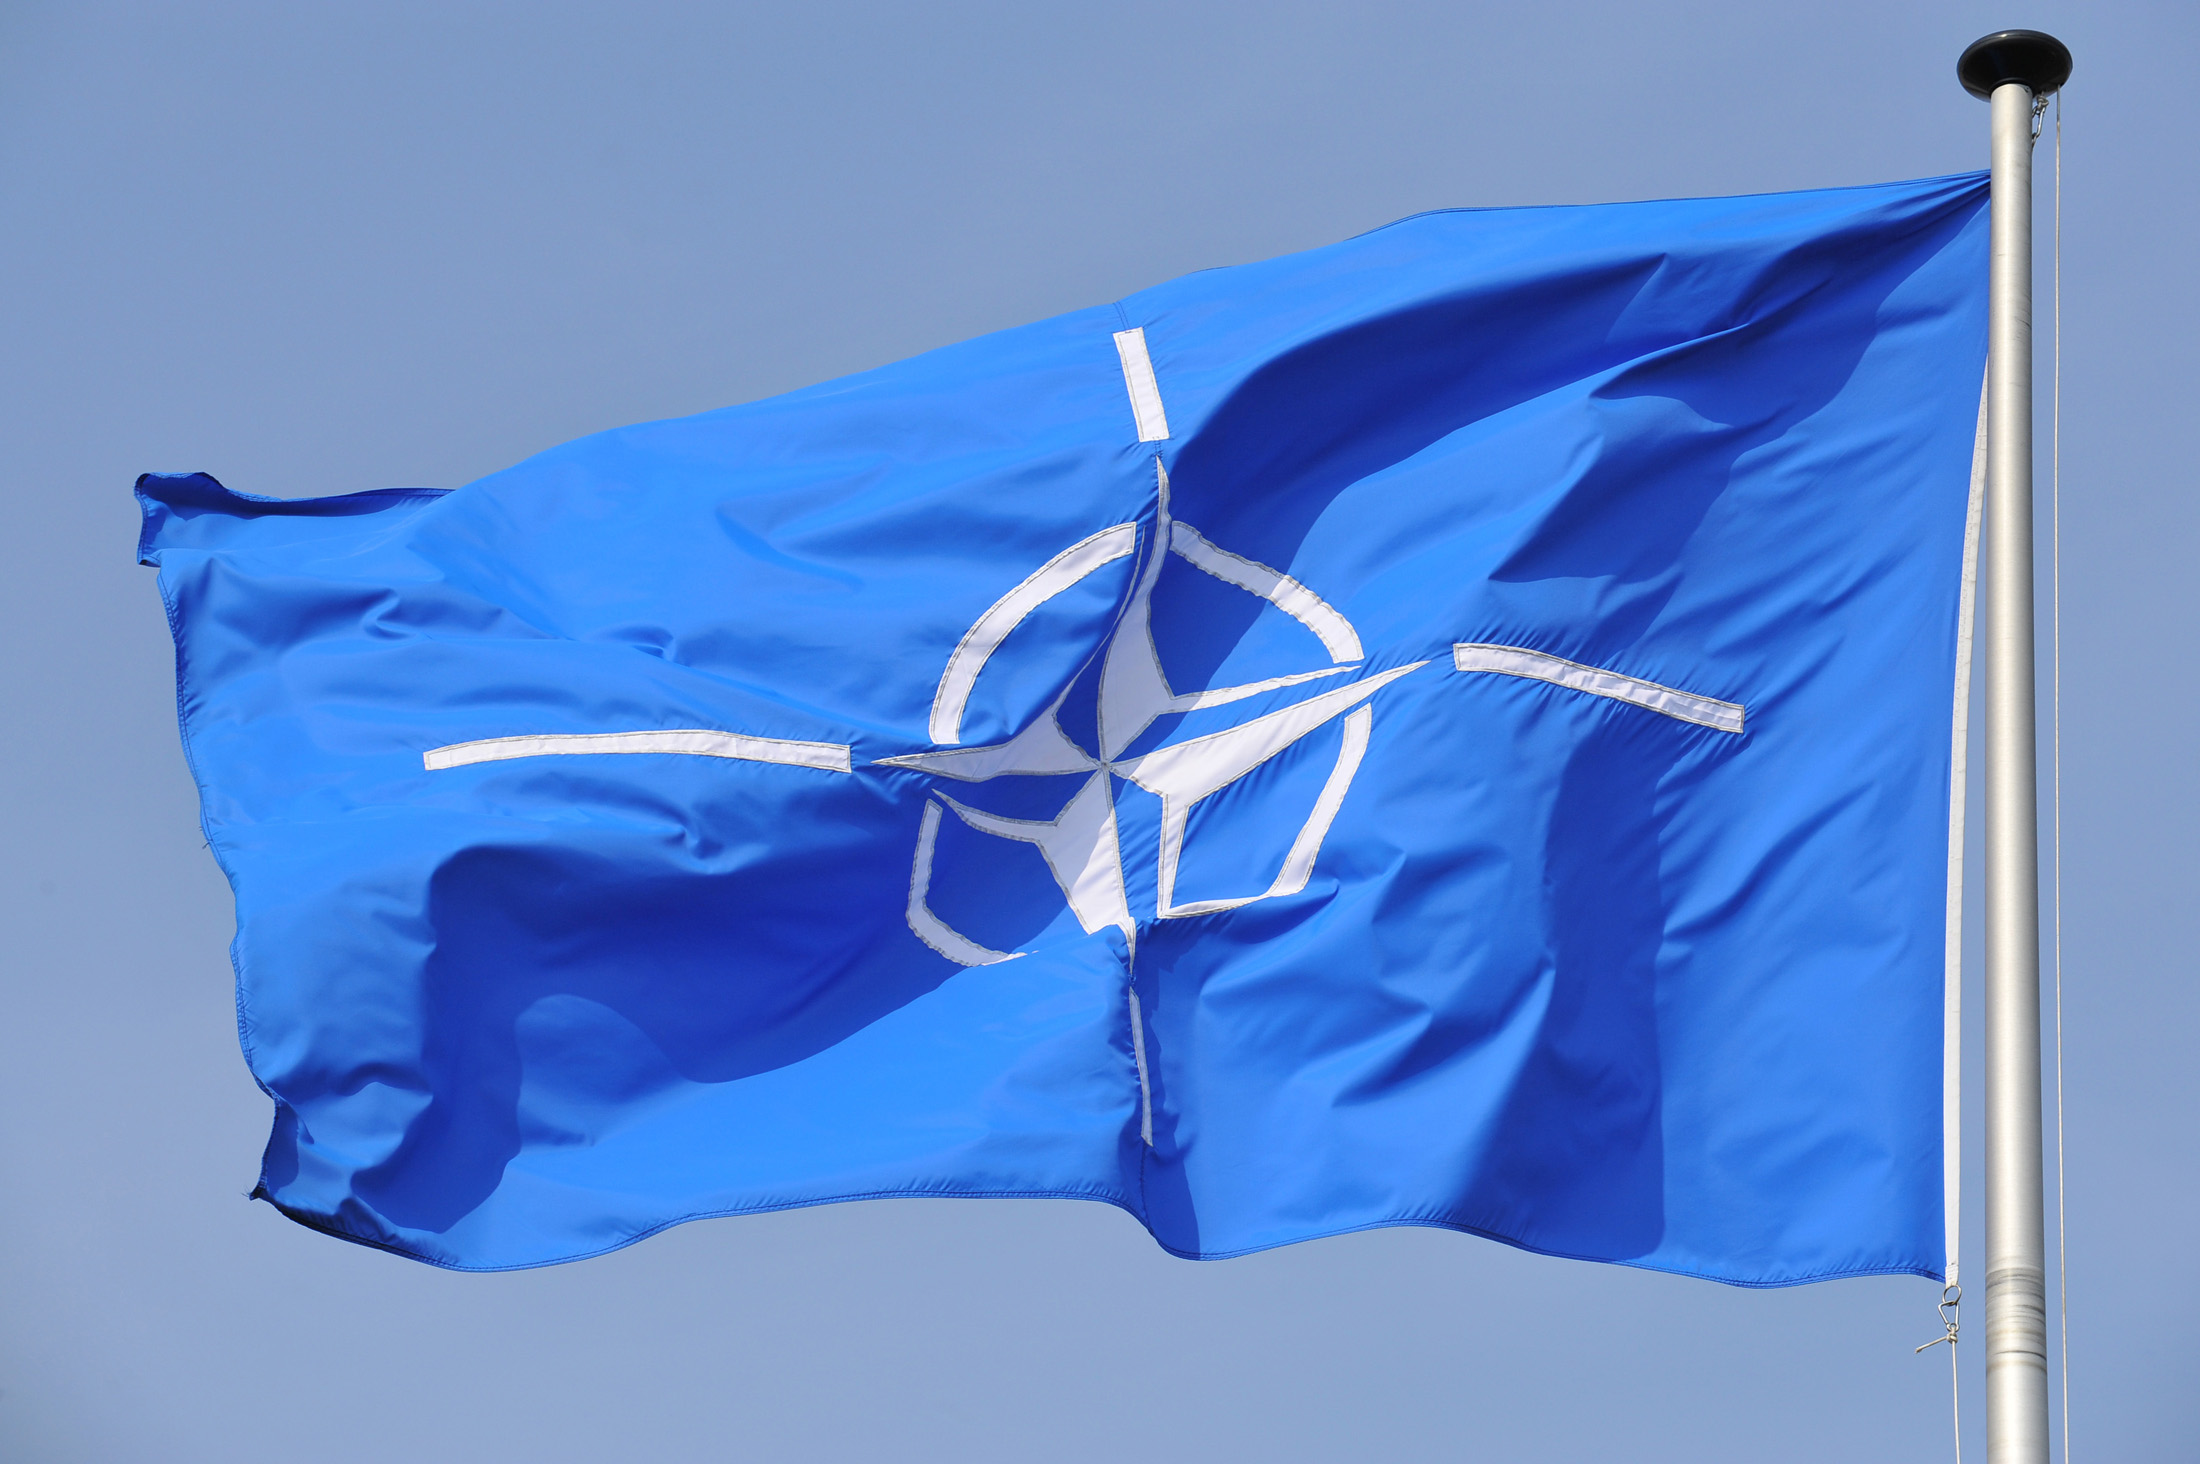 WASHINGTON — Top American and NATO military leaders could begin ...